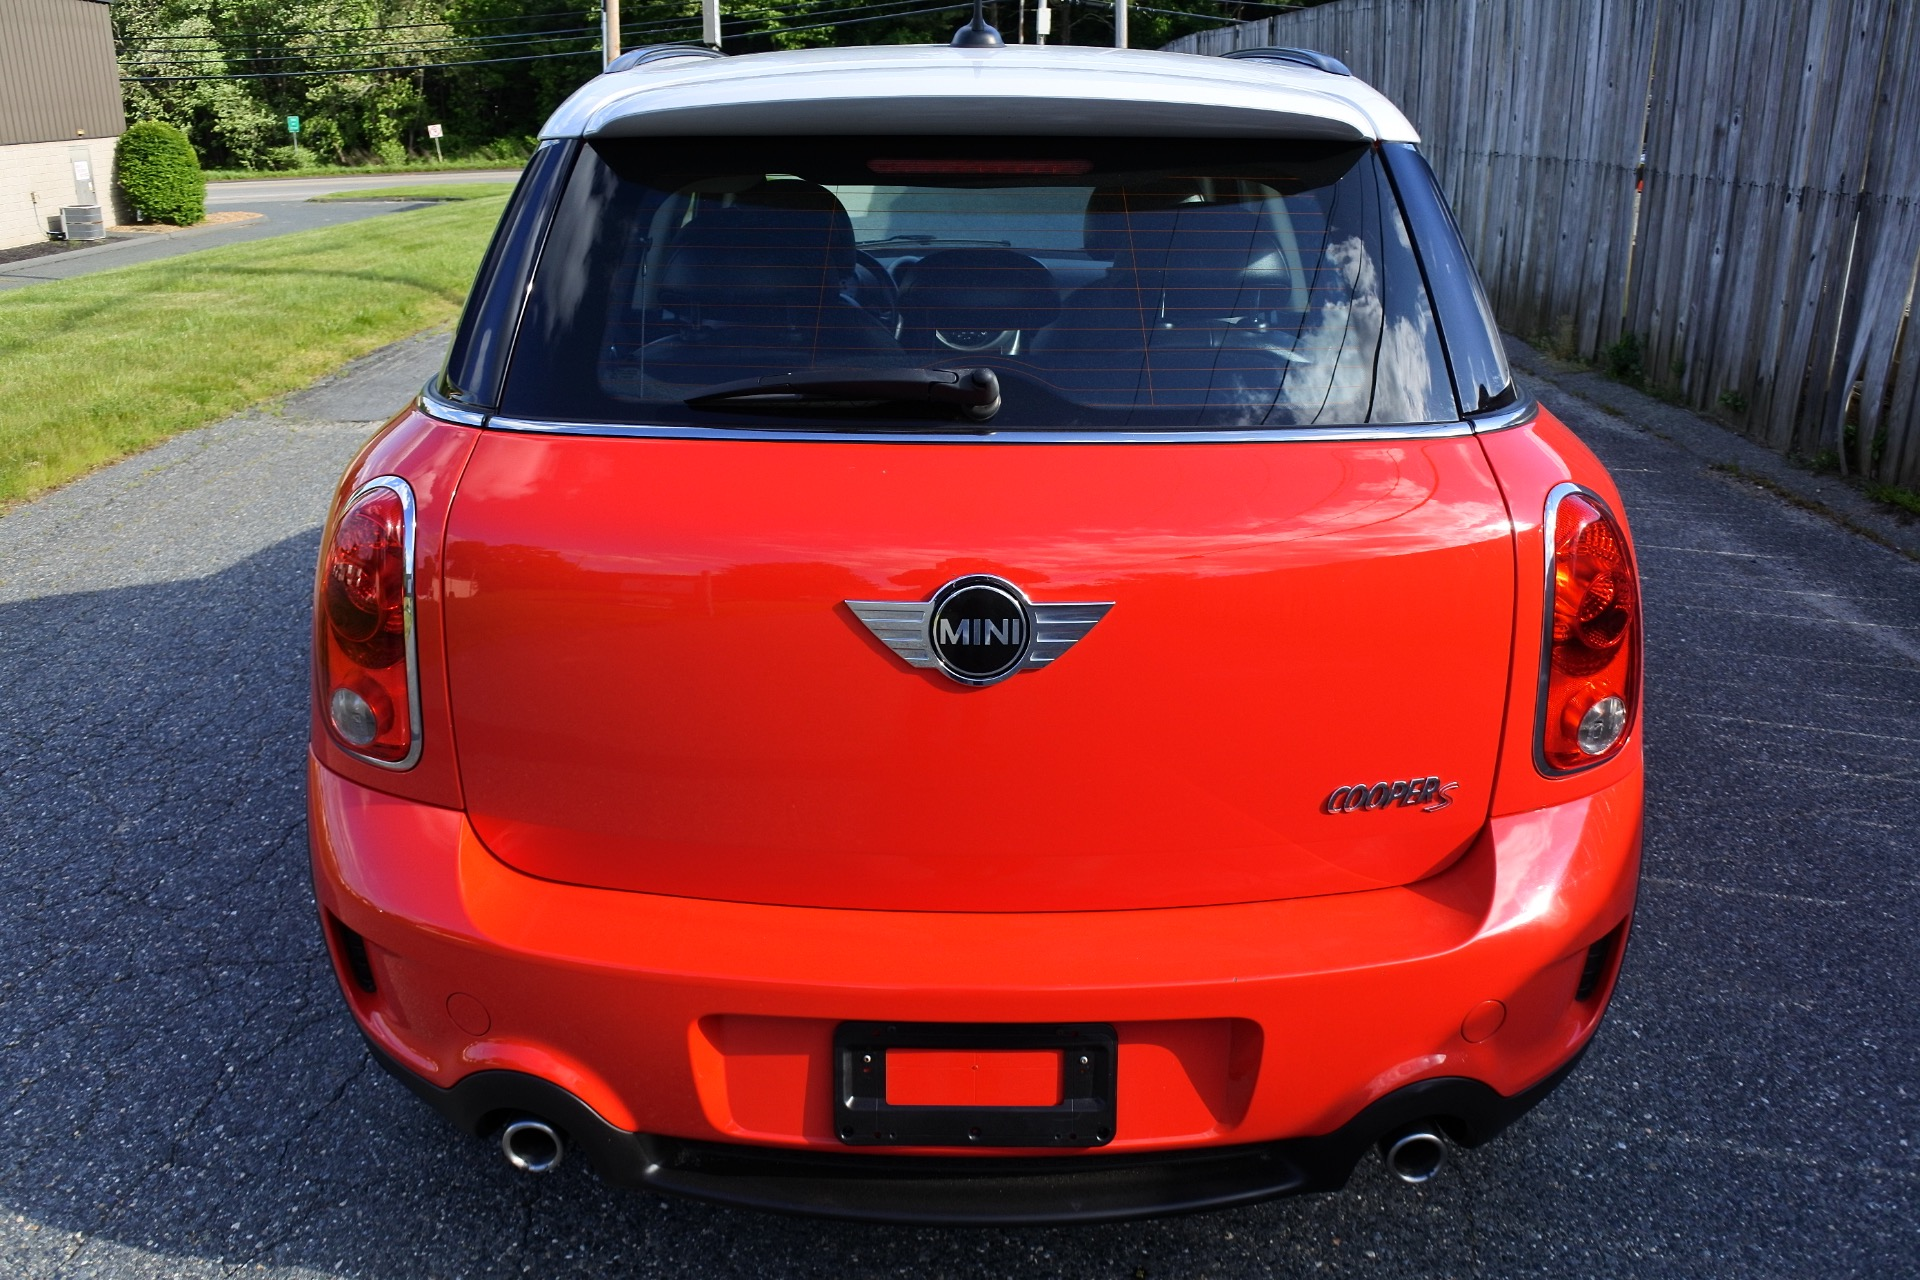 Used 2012 Mini Cooper Countryman AWD 4dr S ALL4 Used 2012 Mini Cooper Countryman AWD 4dr S ALL4 for sale  at Metro West Motorcars LLC in Shrewsbury MA 4